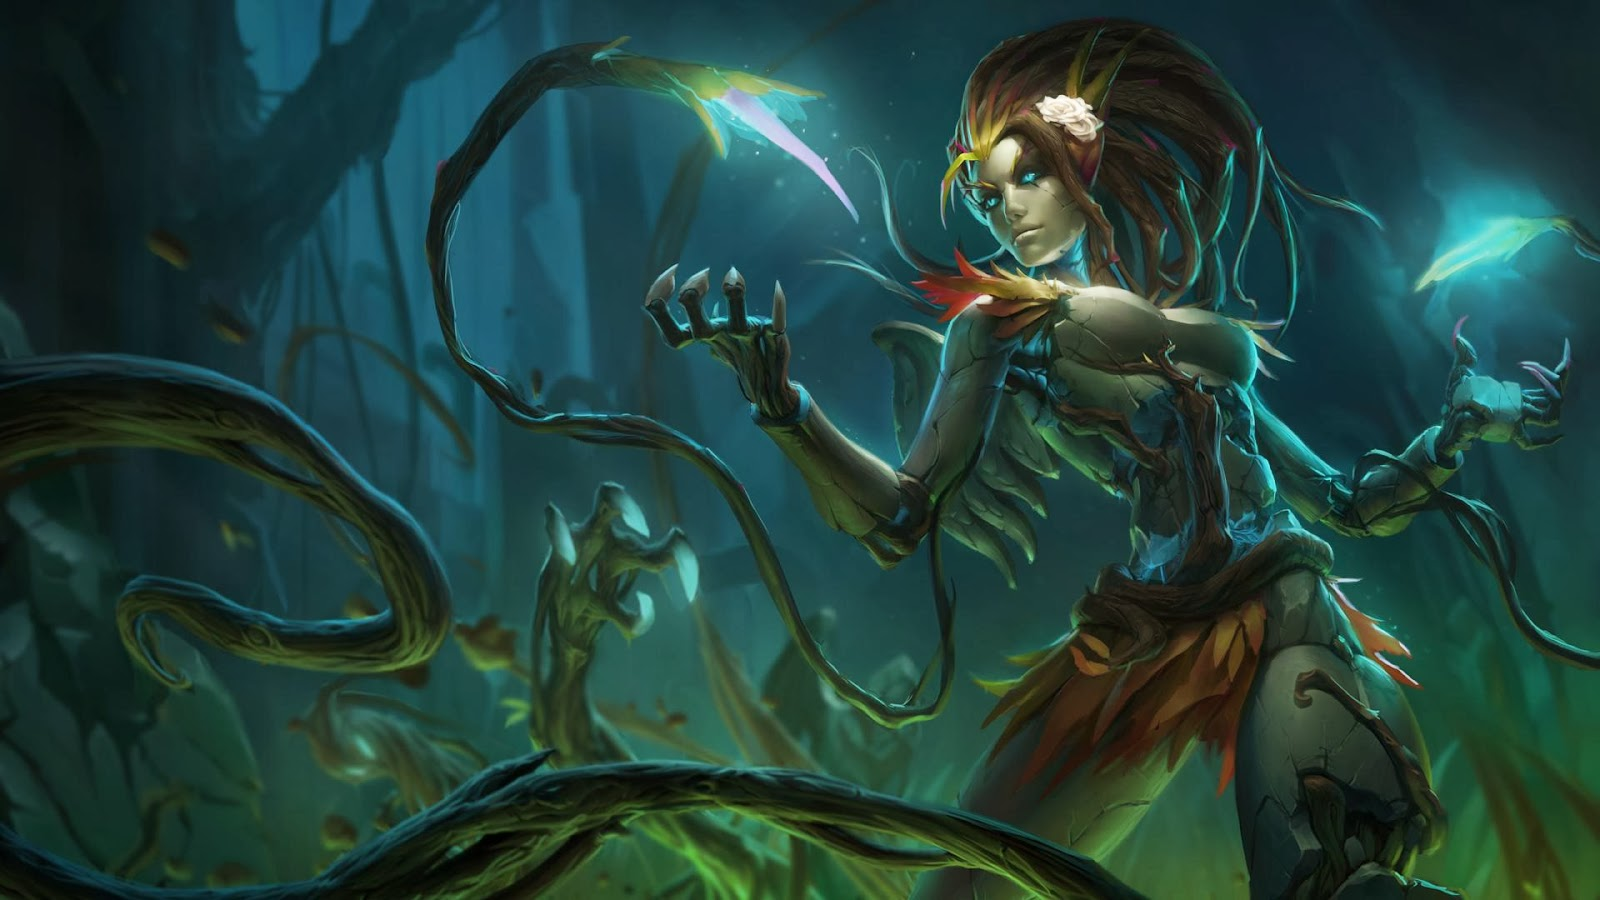 P.O League Of Legends Champs And Skins - Página 8 Haunted_zyra_banner